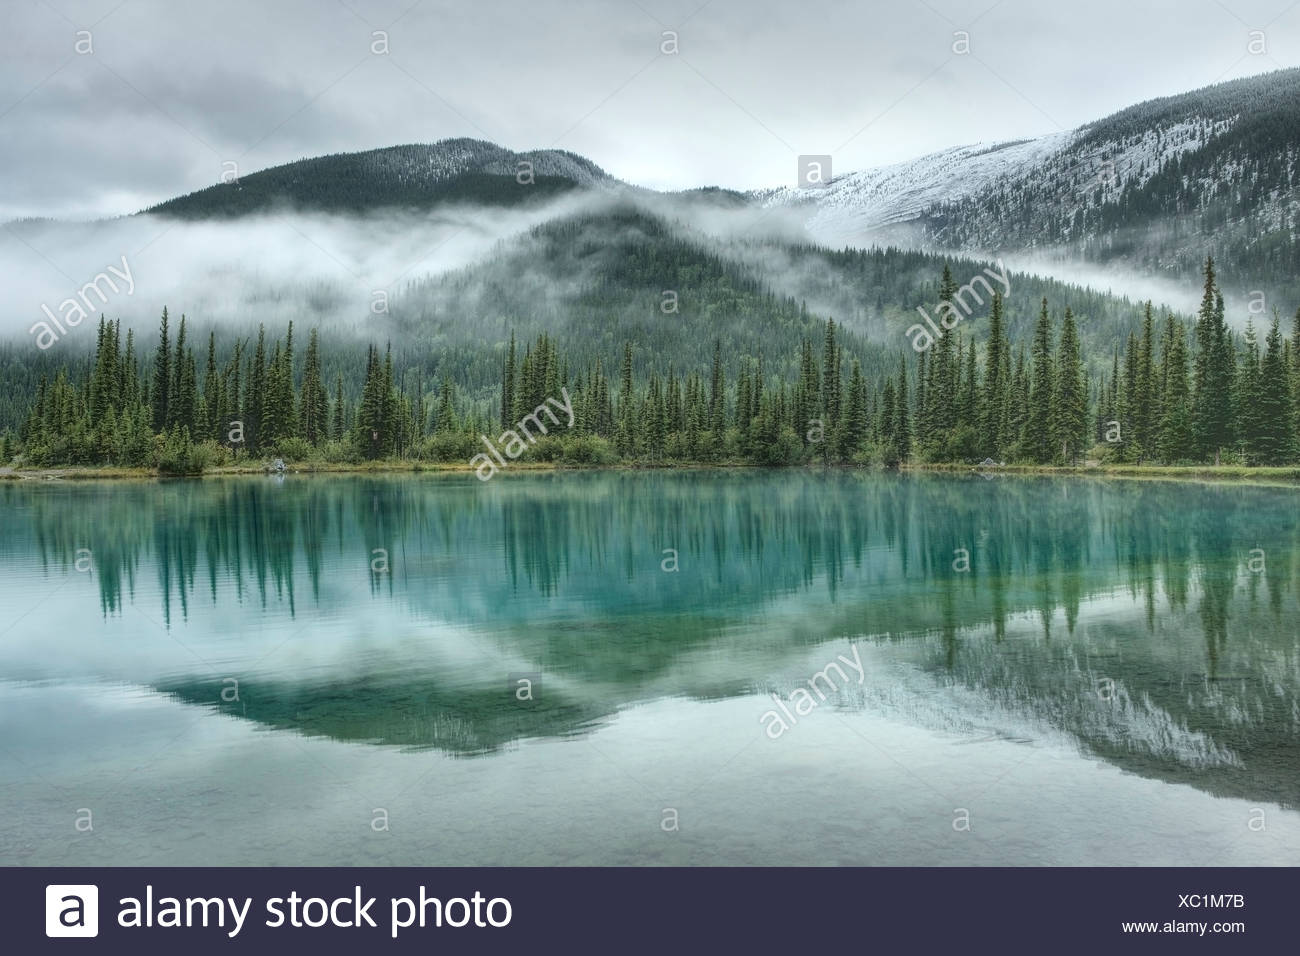 Forget-Me-Not Pond, Elbow Valley, Kananaskis Country, Alberta, Canada Stock Photo